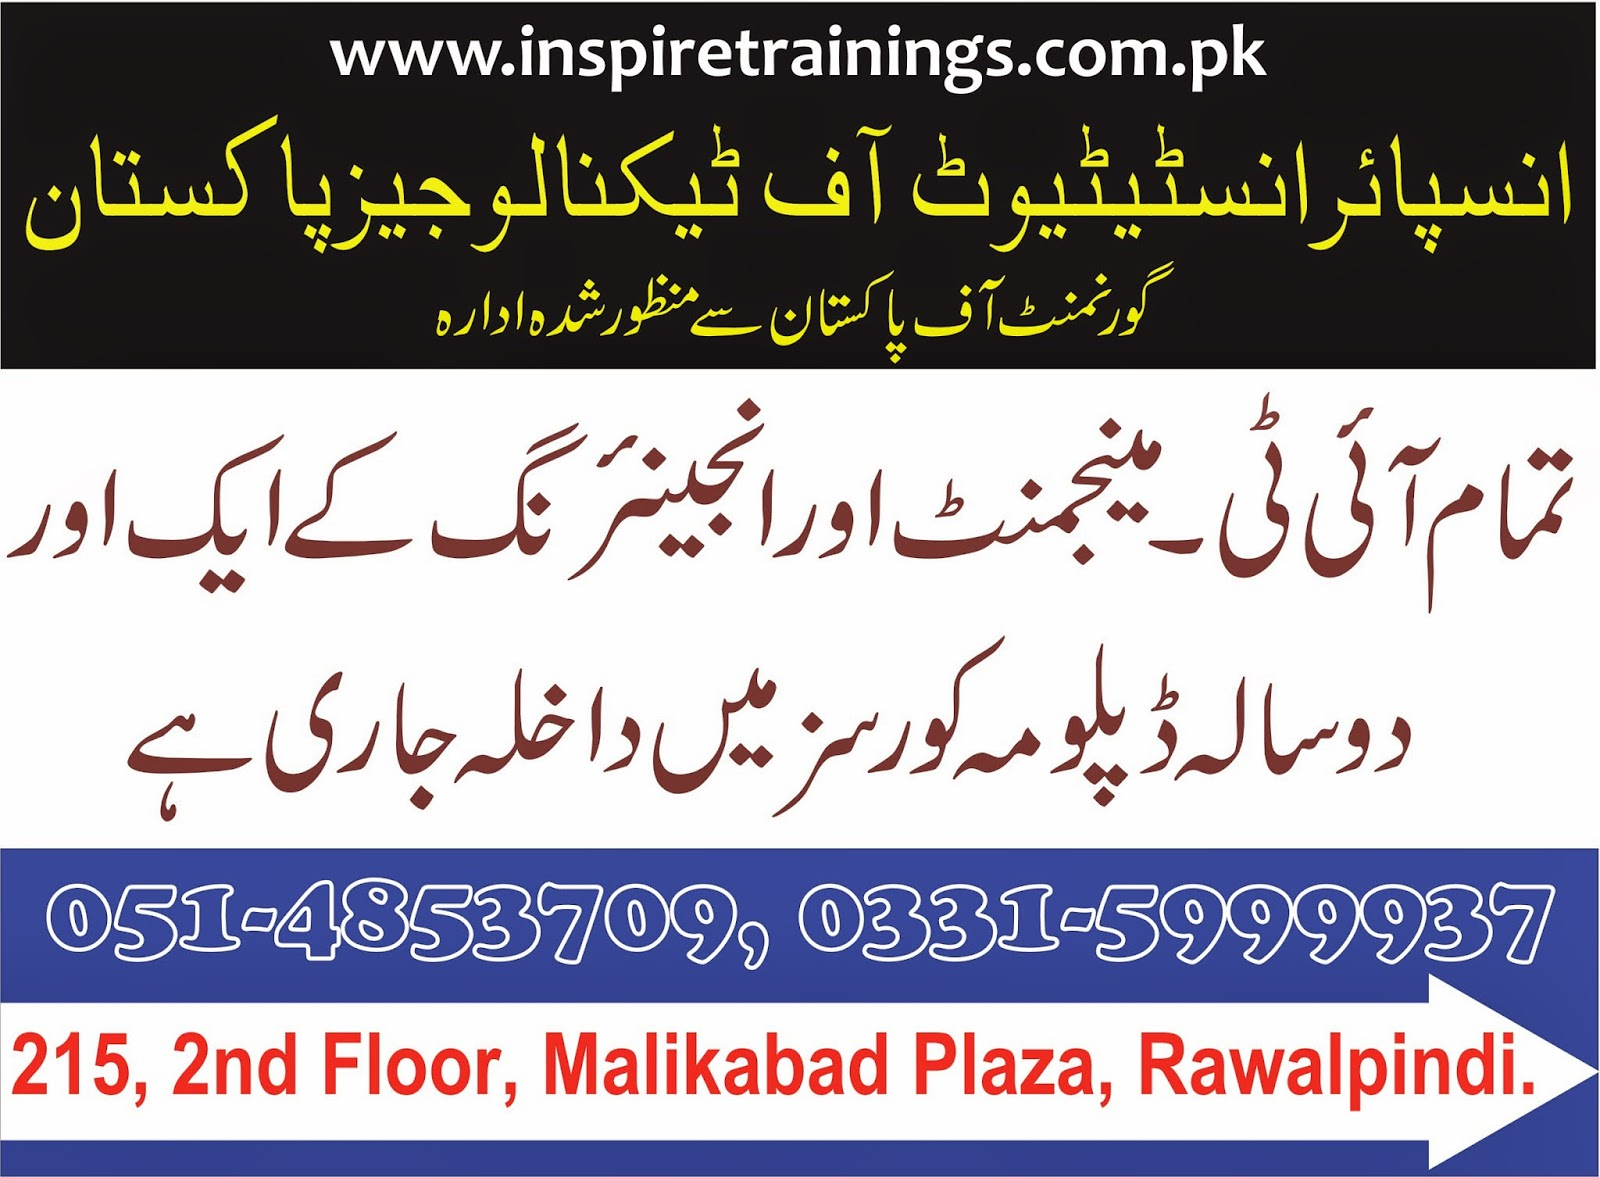 Safety Officer Diploma Courses in Pakistan: INSPIRE ...